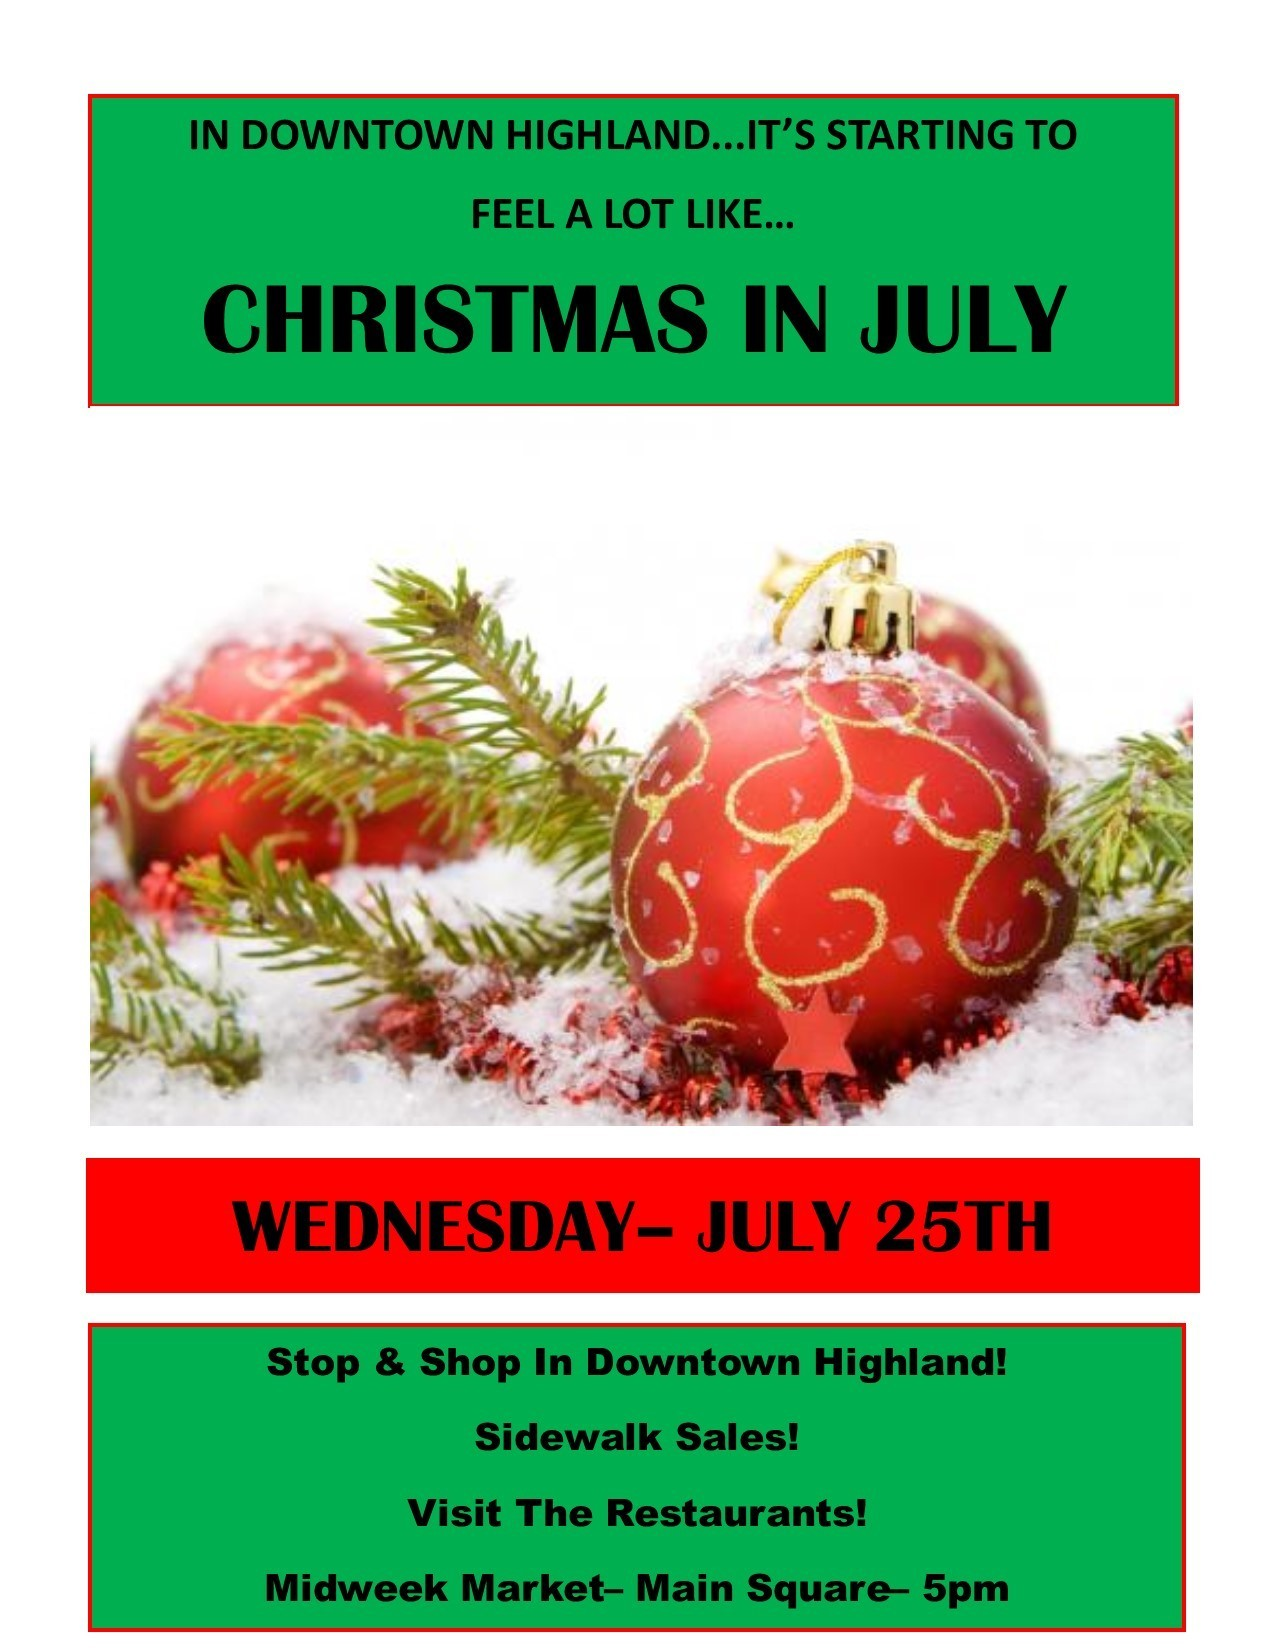 downtown highland to celebrate christmas in july on july 25th post tribune - Why Is Christmas On The 25th